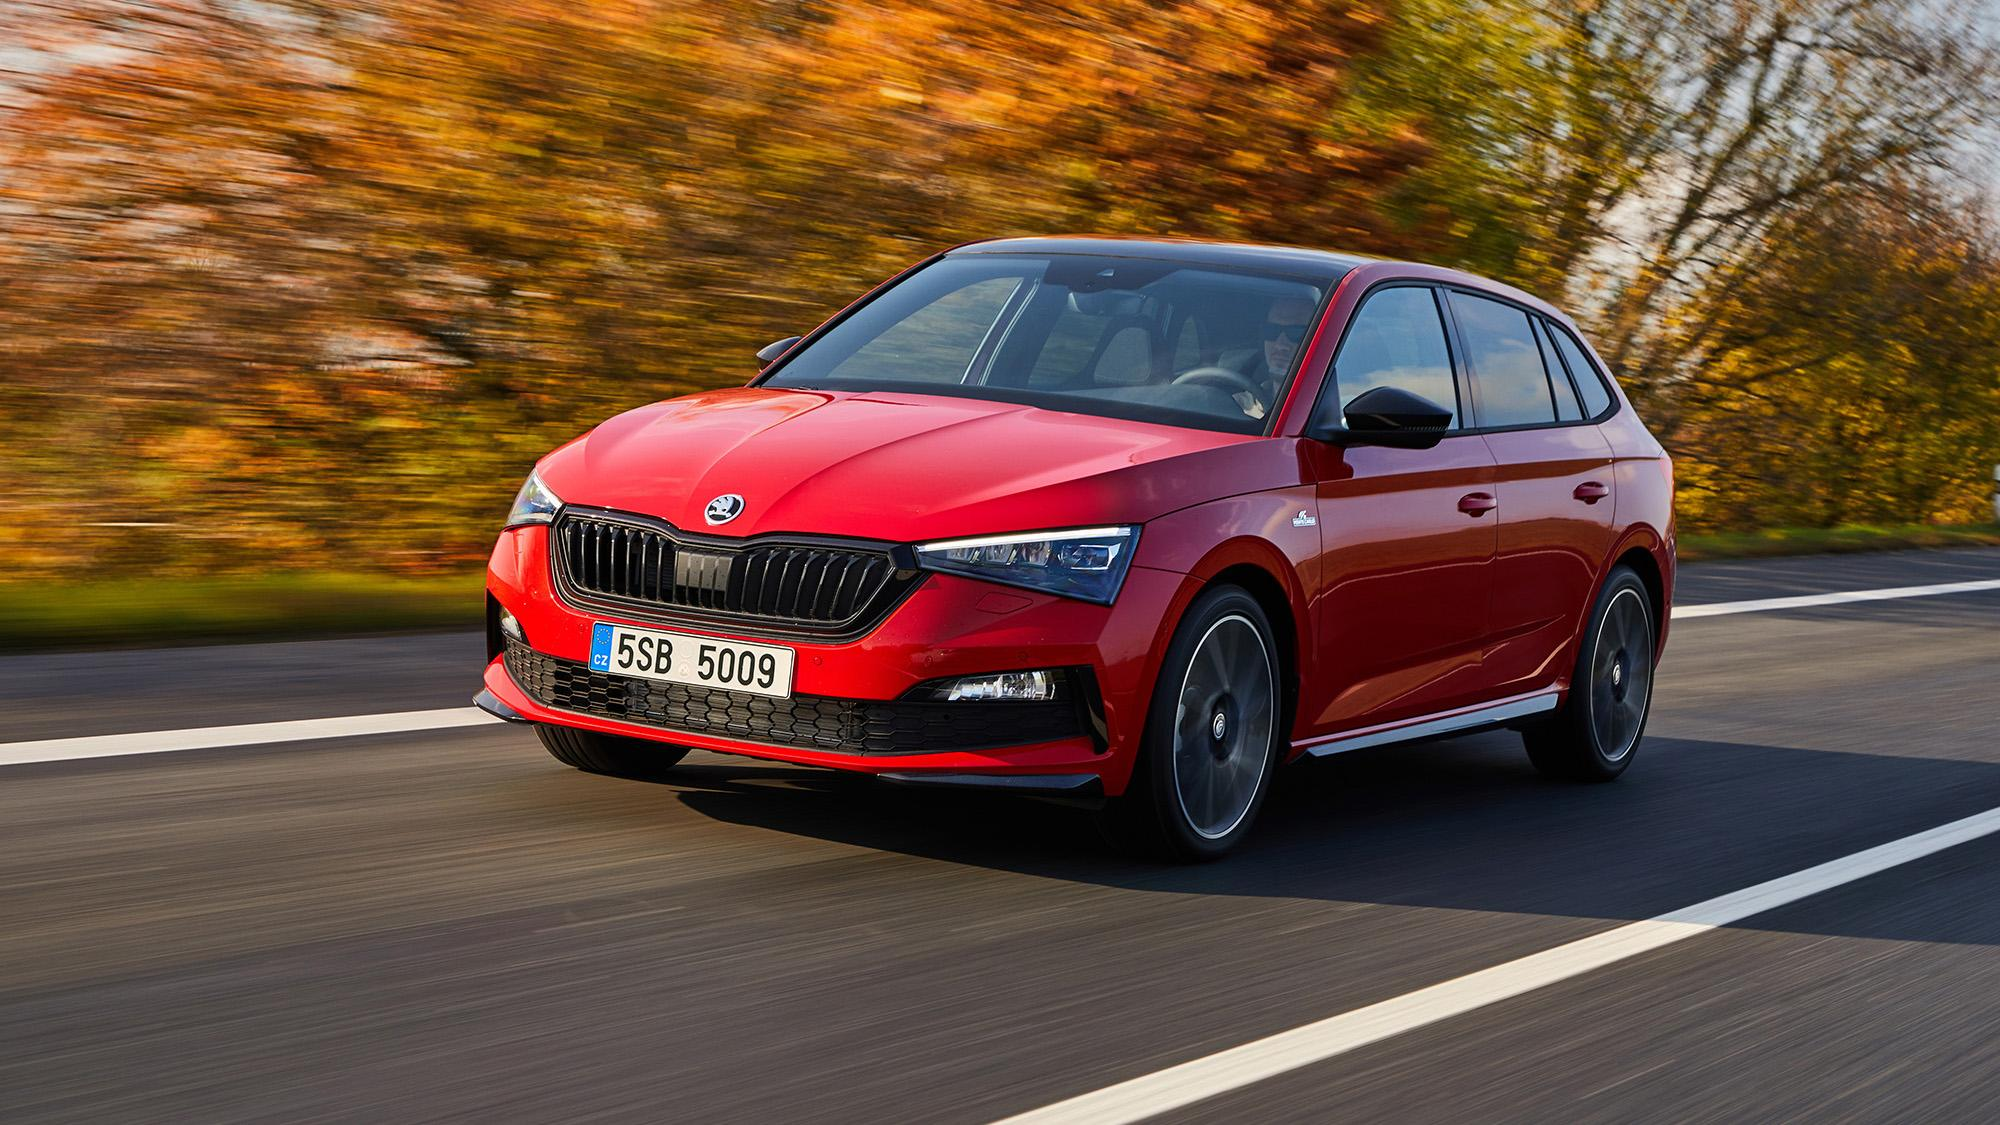 Skoda working on Scala start/stop fix, offering service pack to buyers